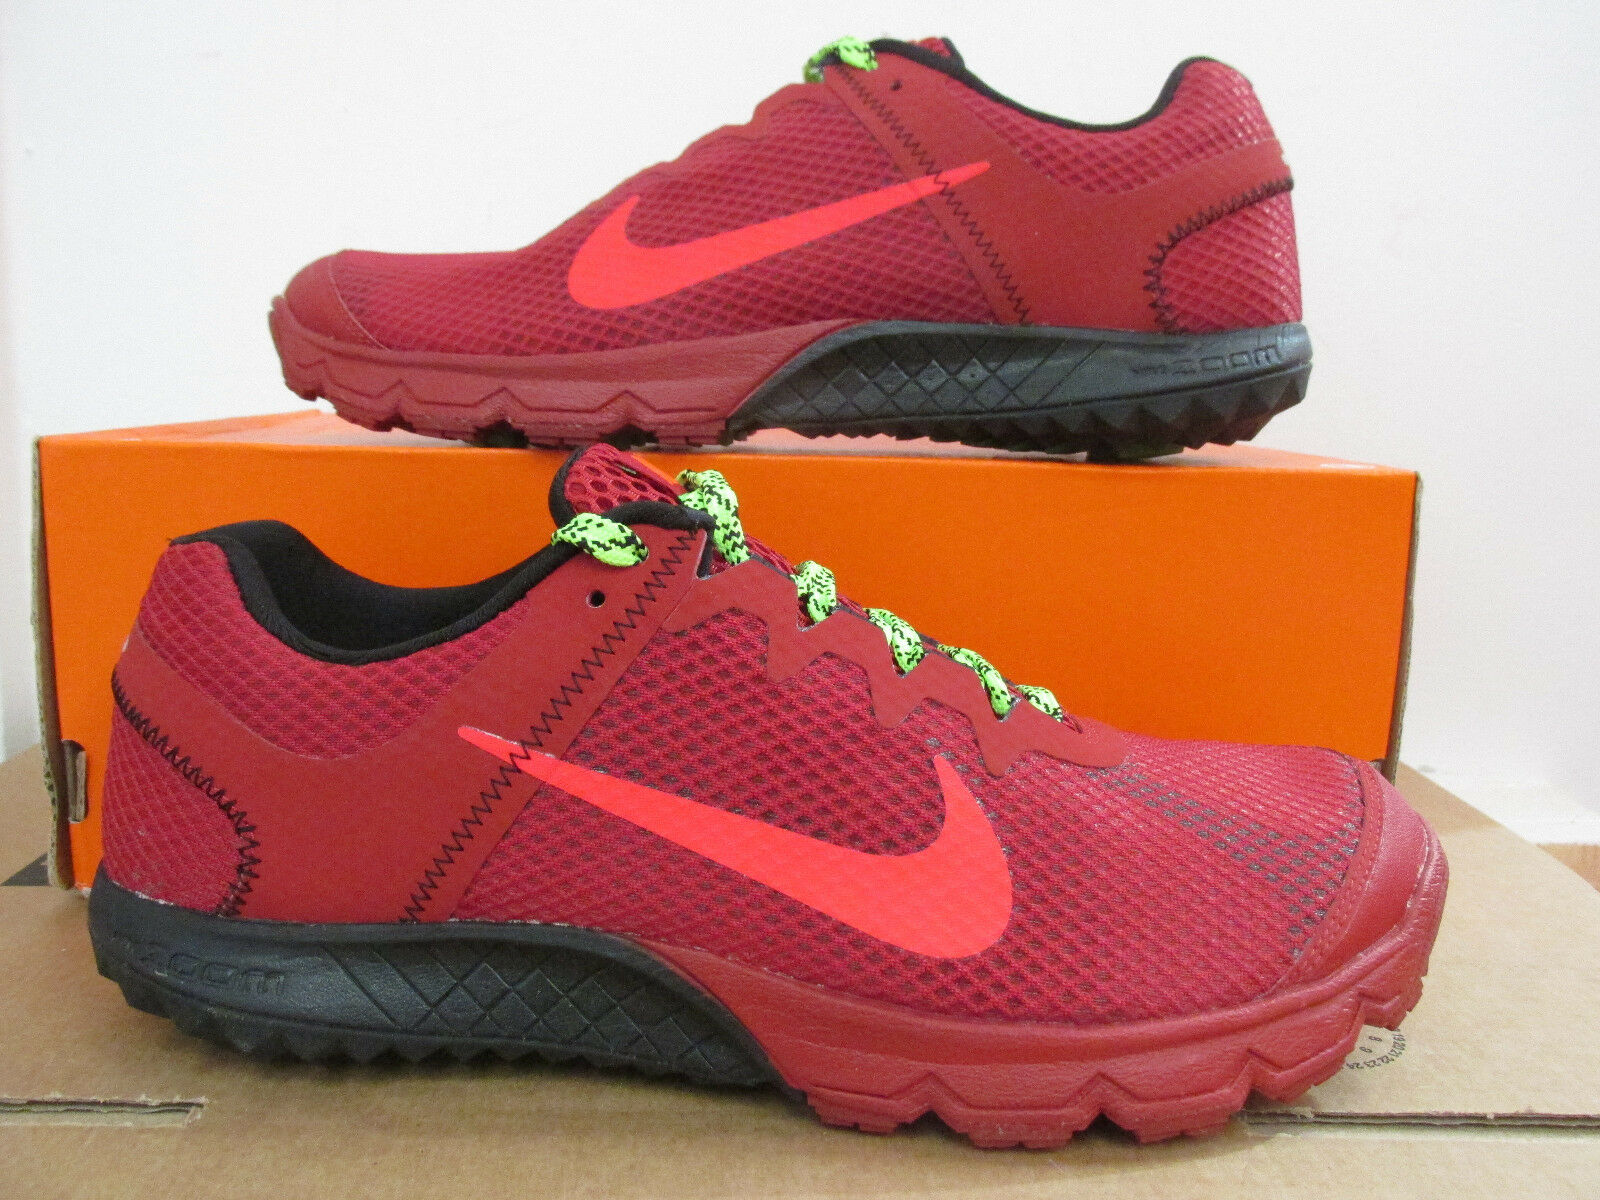 nike zoom wildhorse homme running trainers 599118 660 sneakers chaussures CLEARANCE